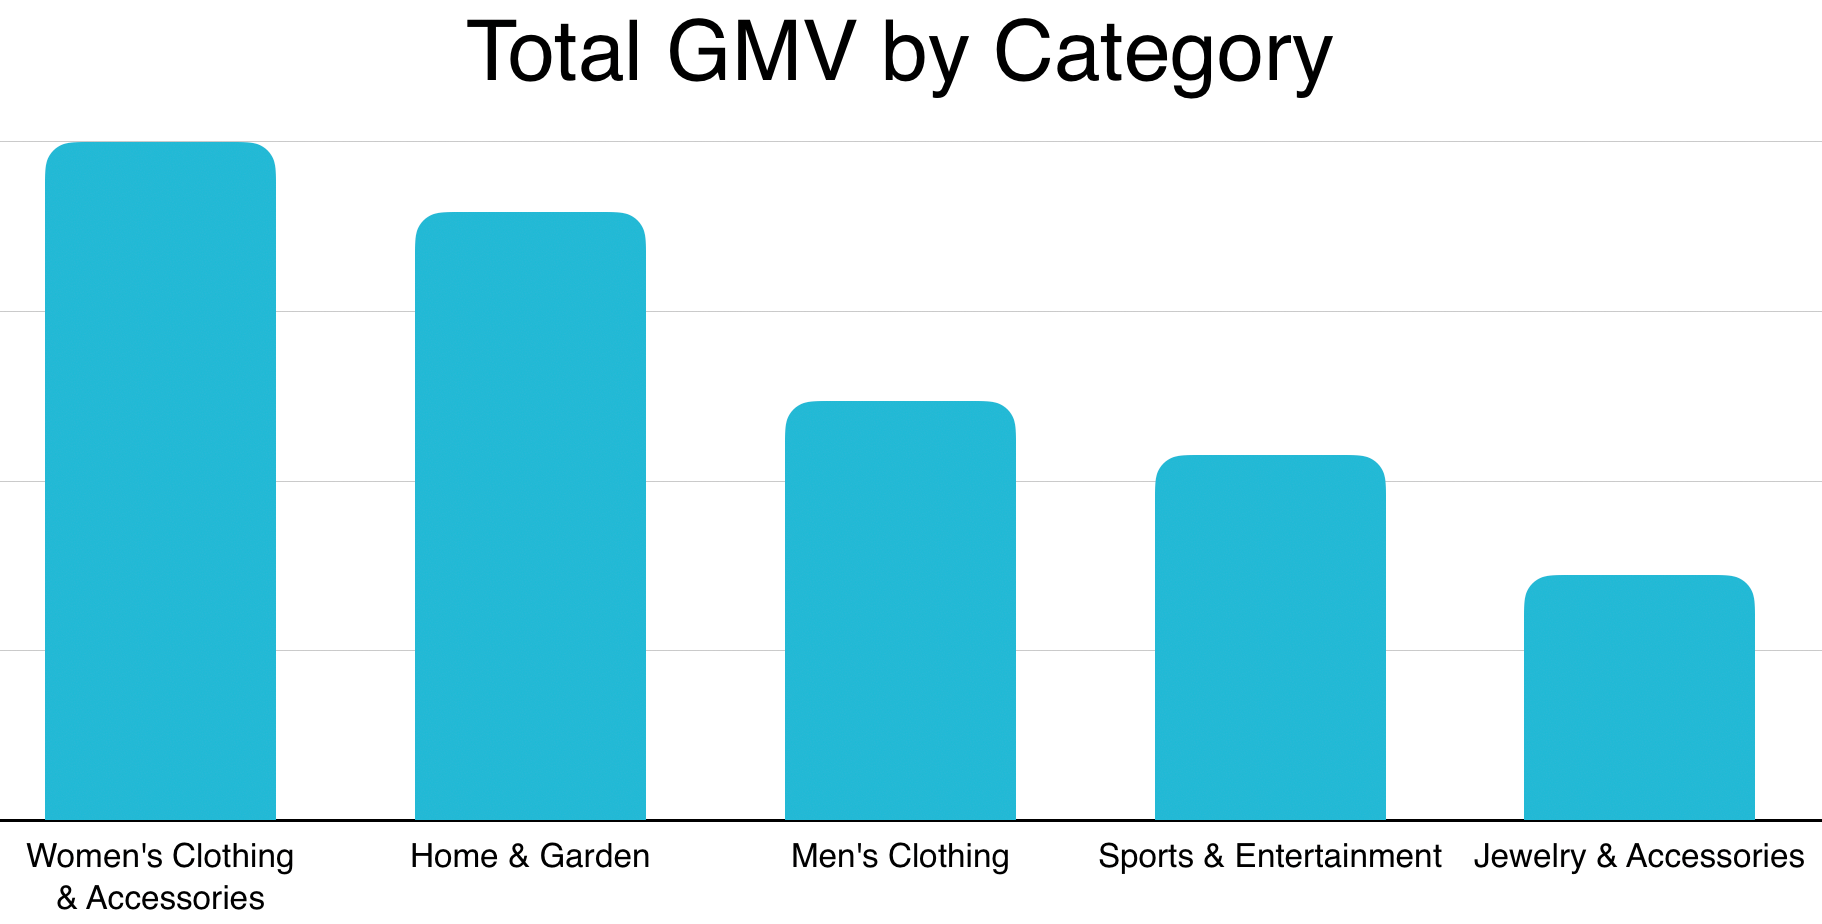 2019 Niche US Markets by GMV